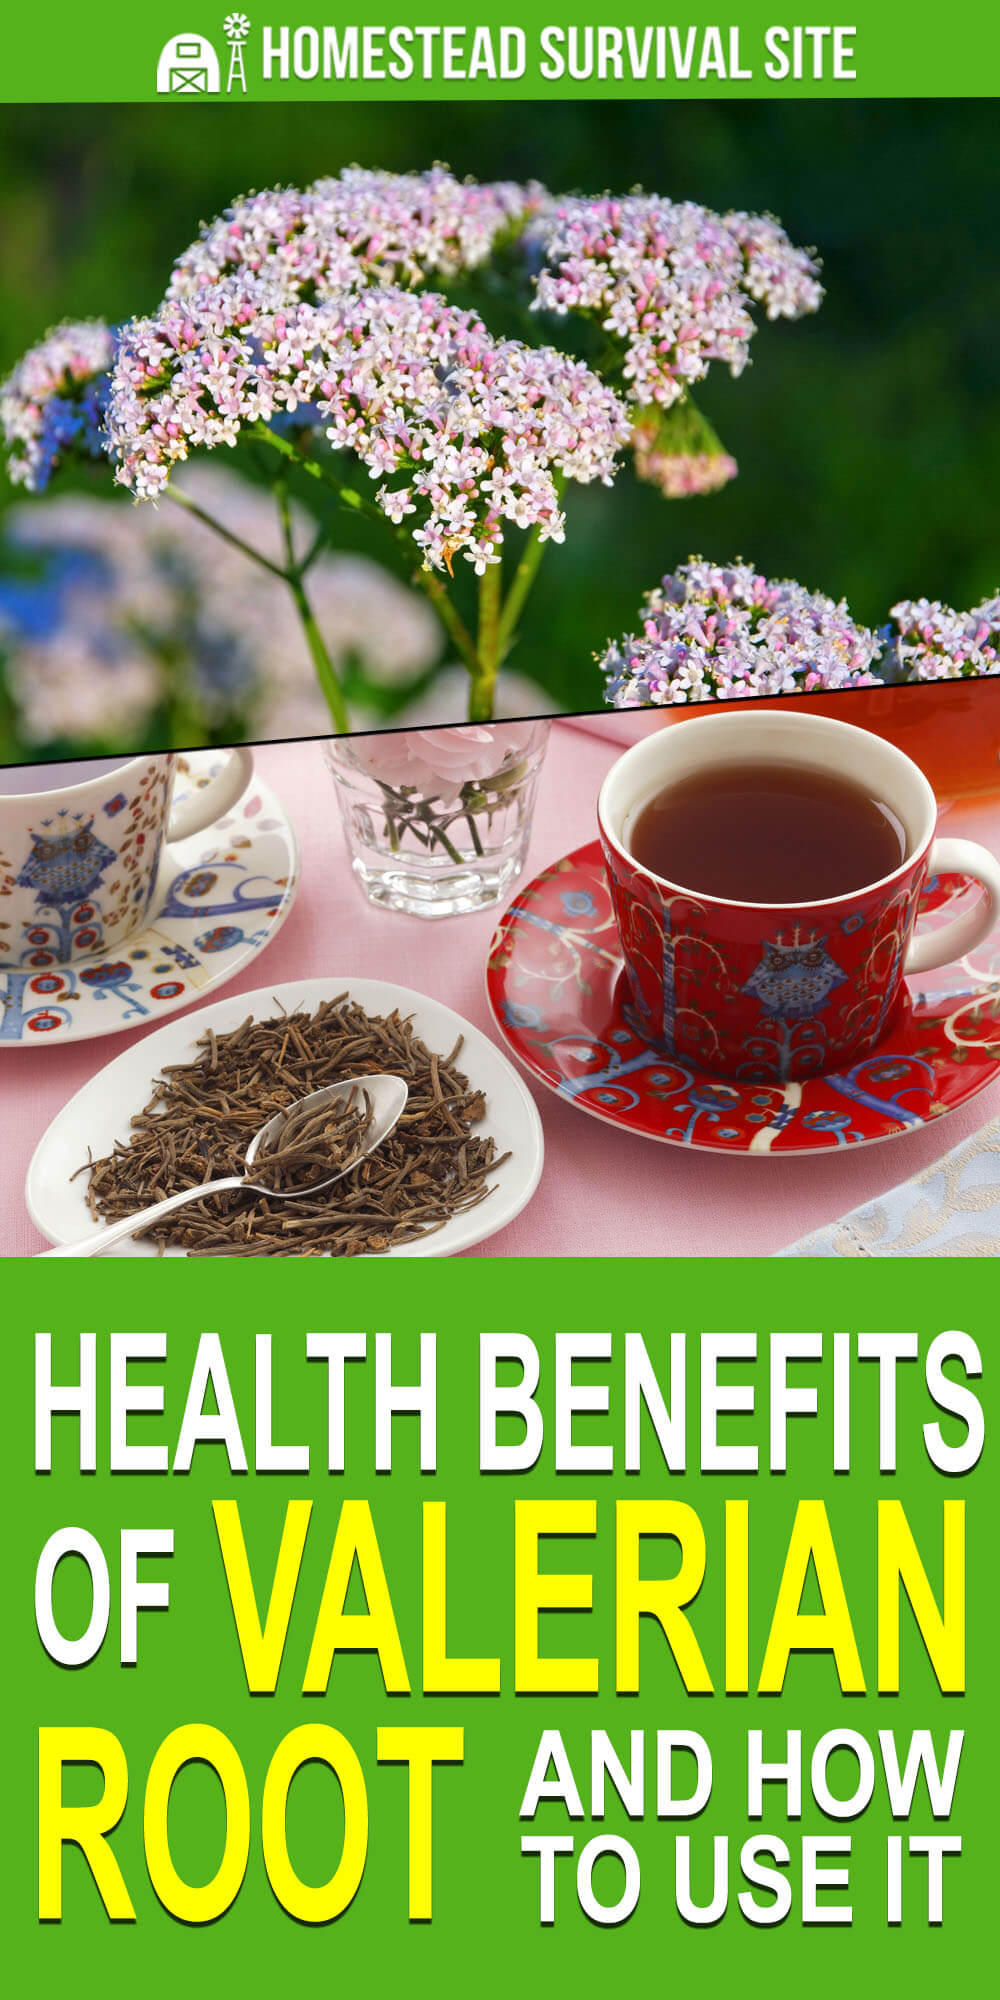 Health Benefits of Valerian Root and How to Use It